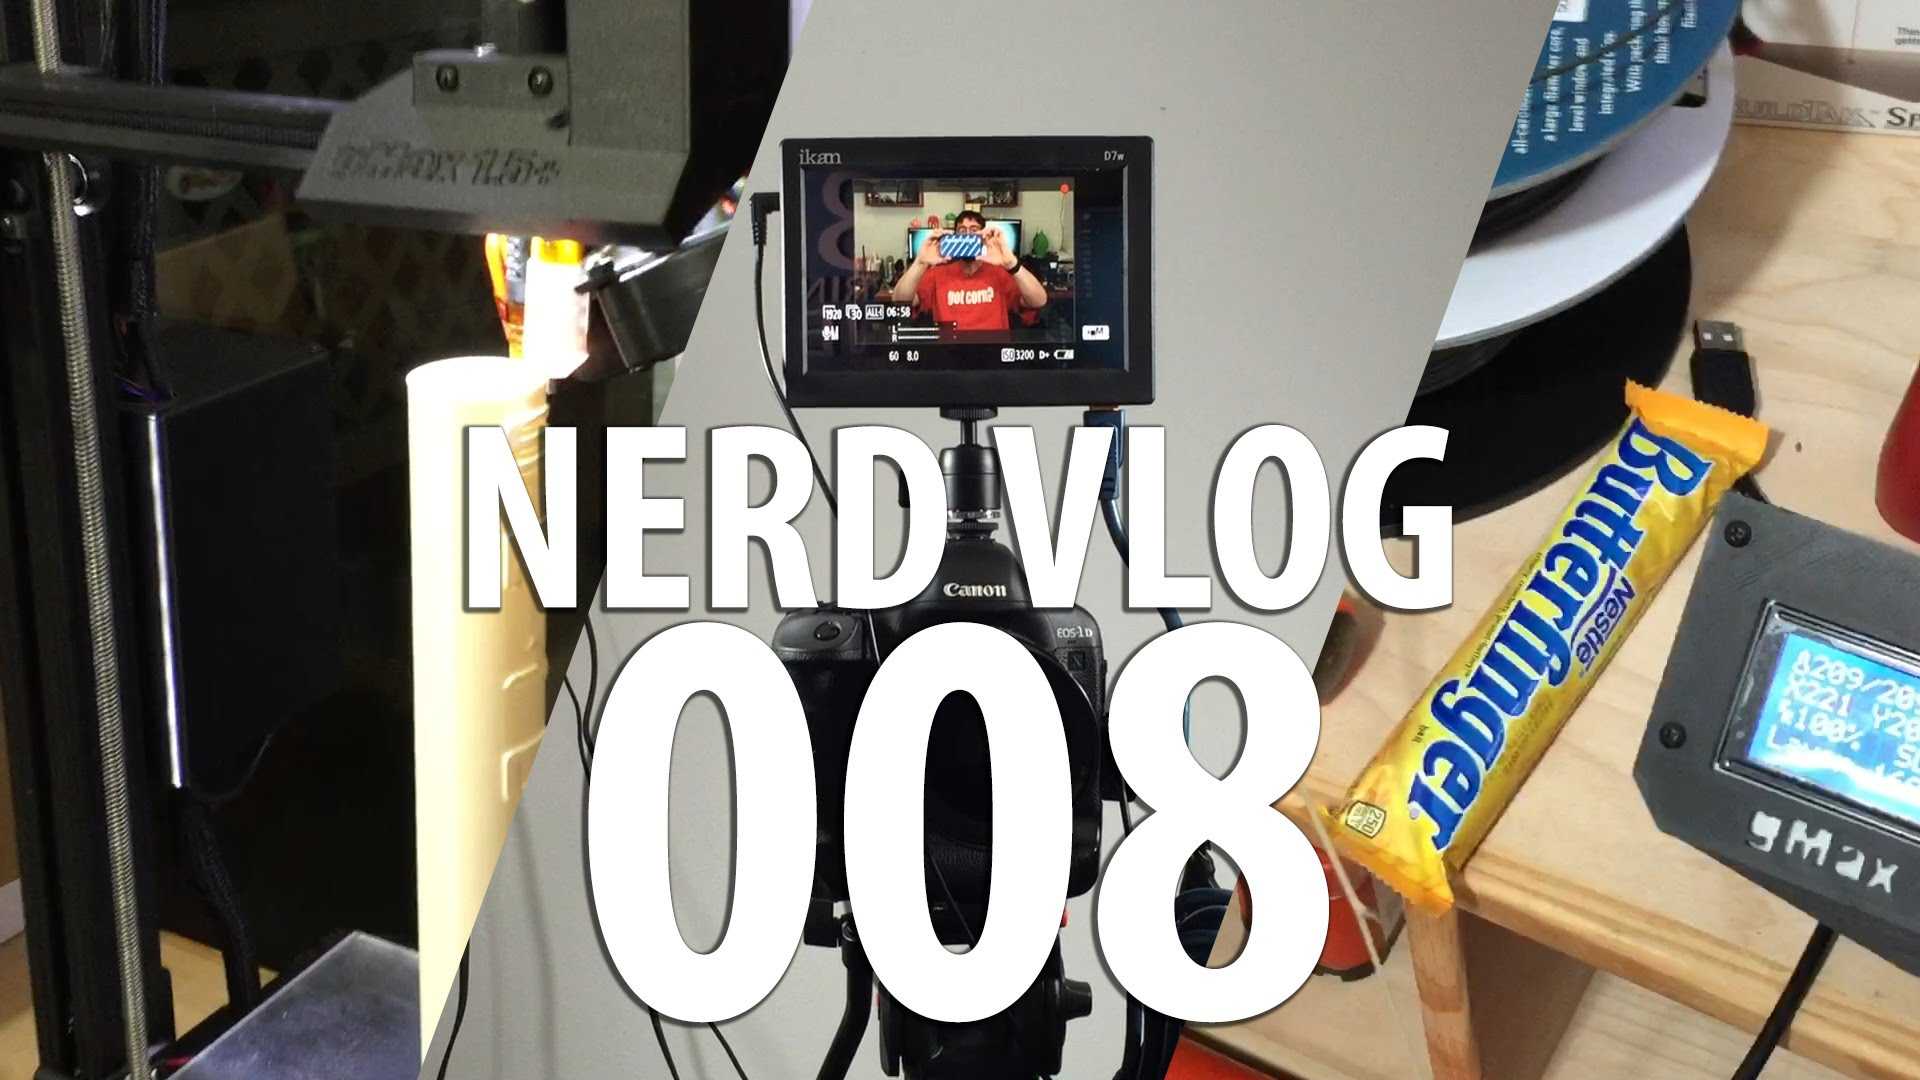 Nerd Vlog 008 (gMax, Proto Pasta, SpaceX, Butterfinger)